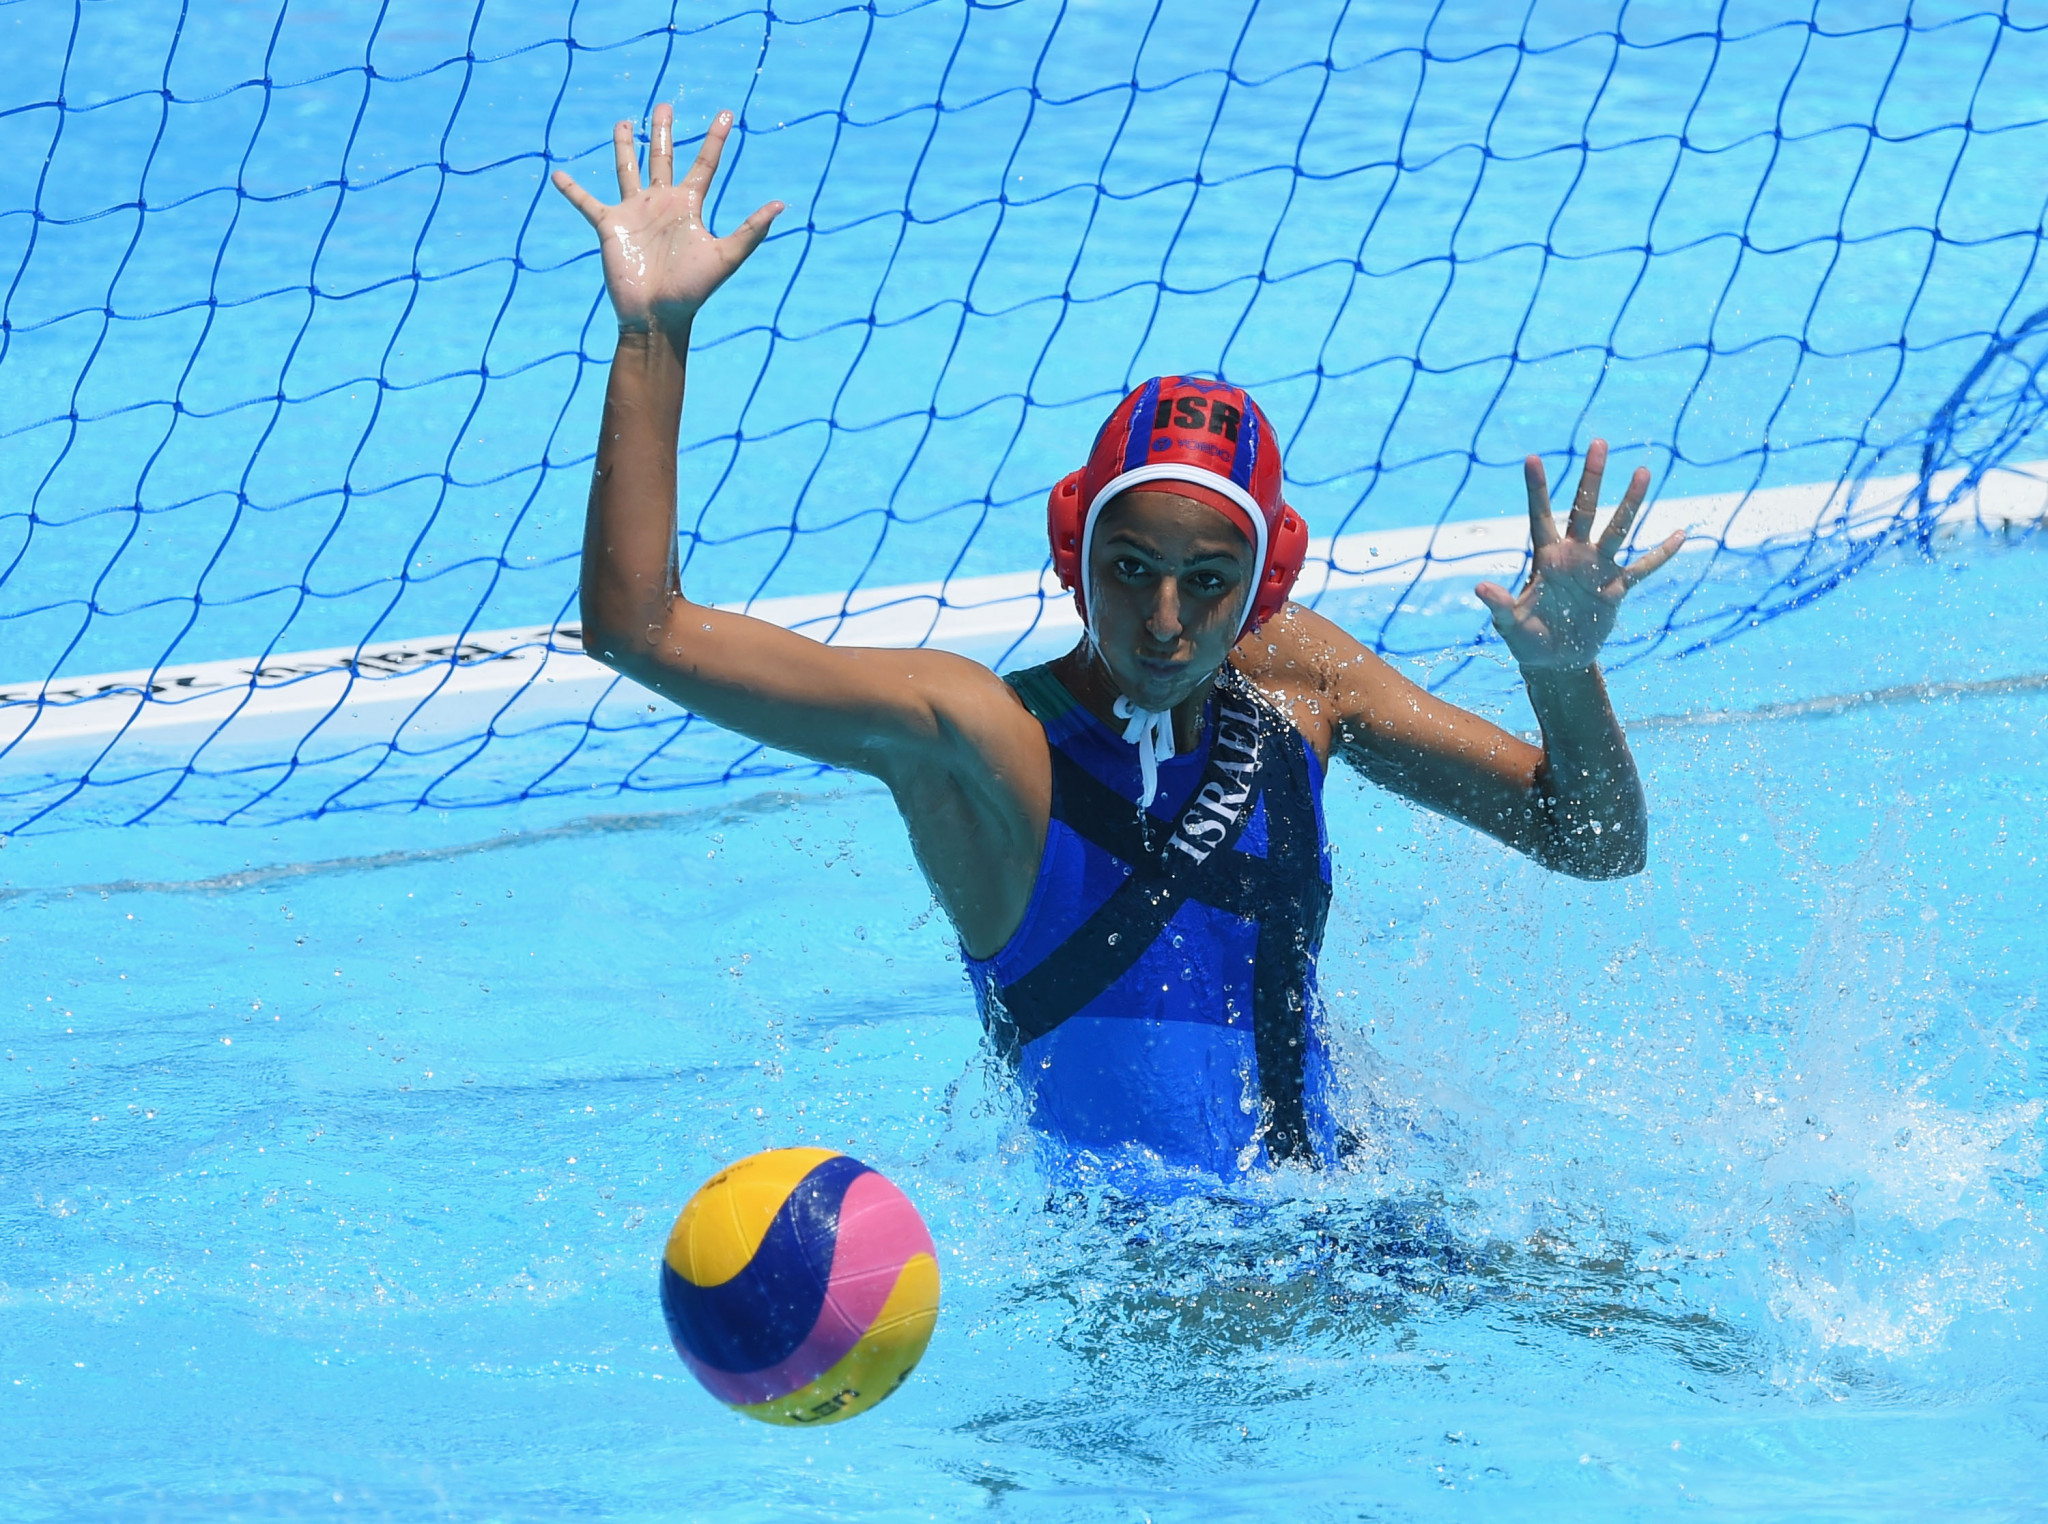 Greece recorded a ninth place finish at the Women's European Water Polo Championships ©Getty Images